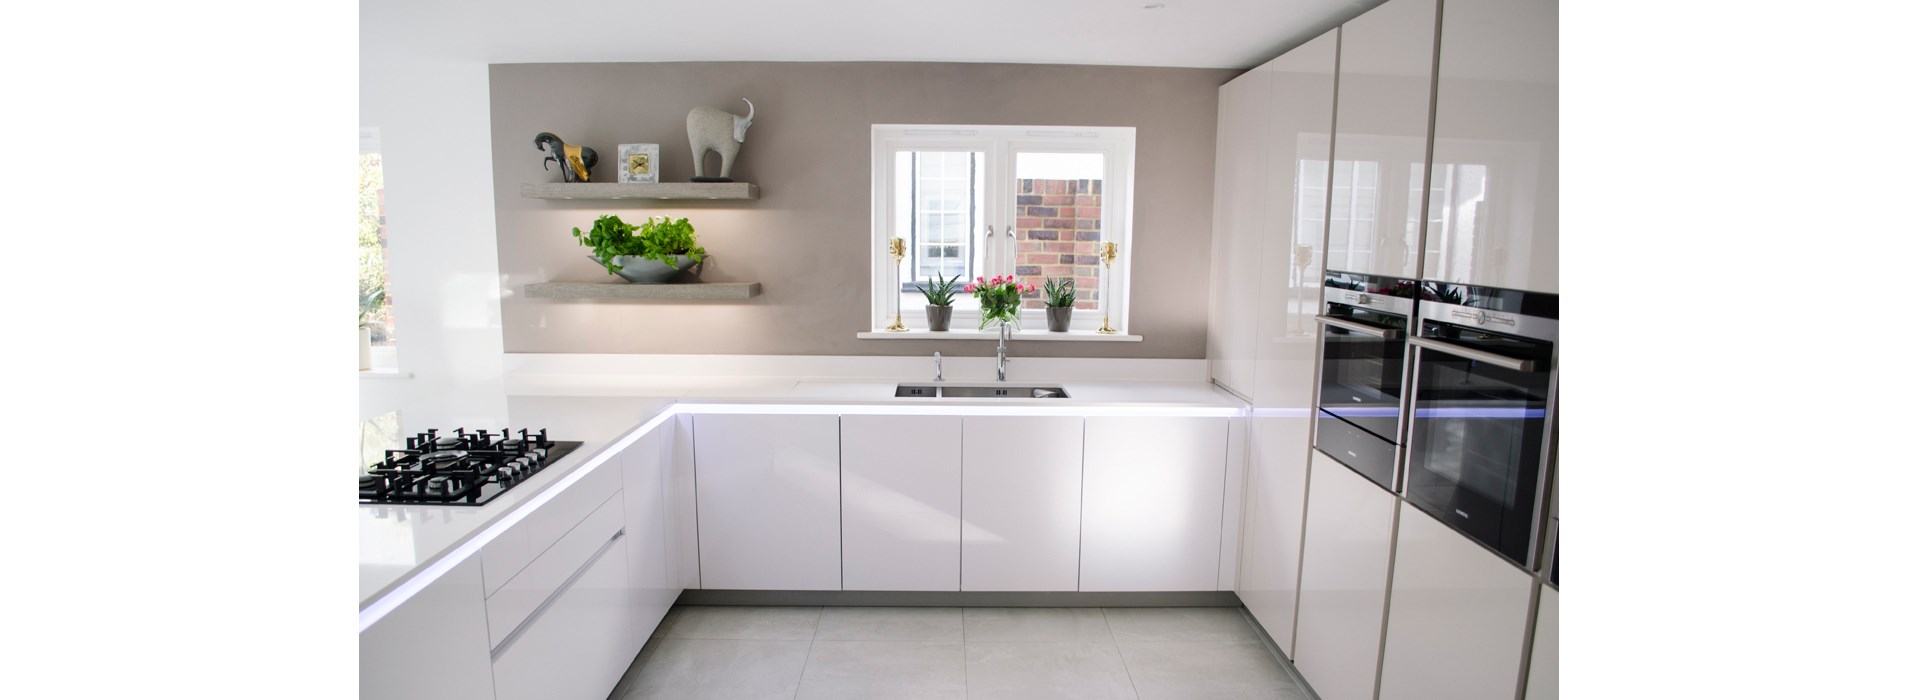 Great Elkins   An LED Illuminated White Kitchen